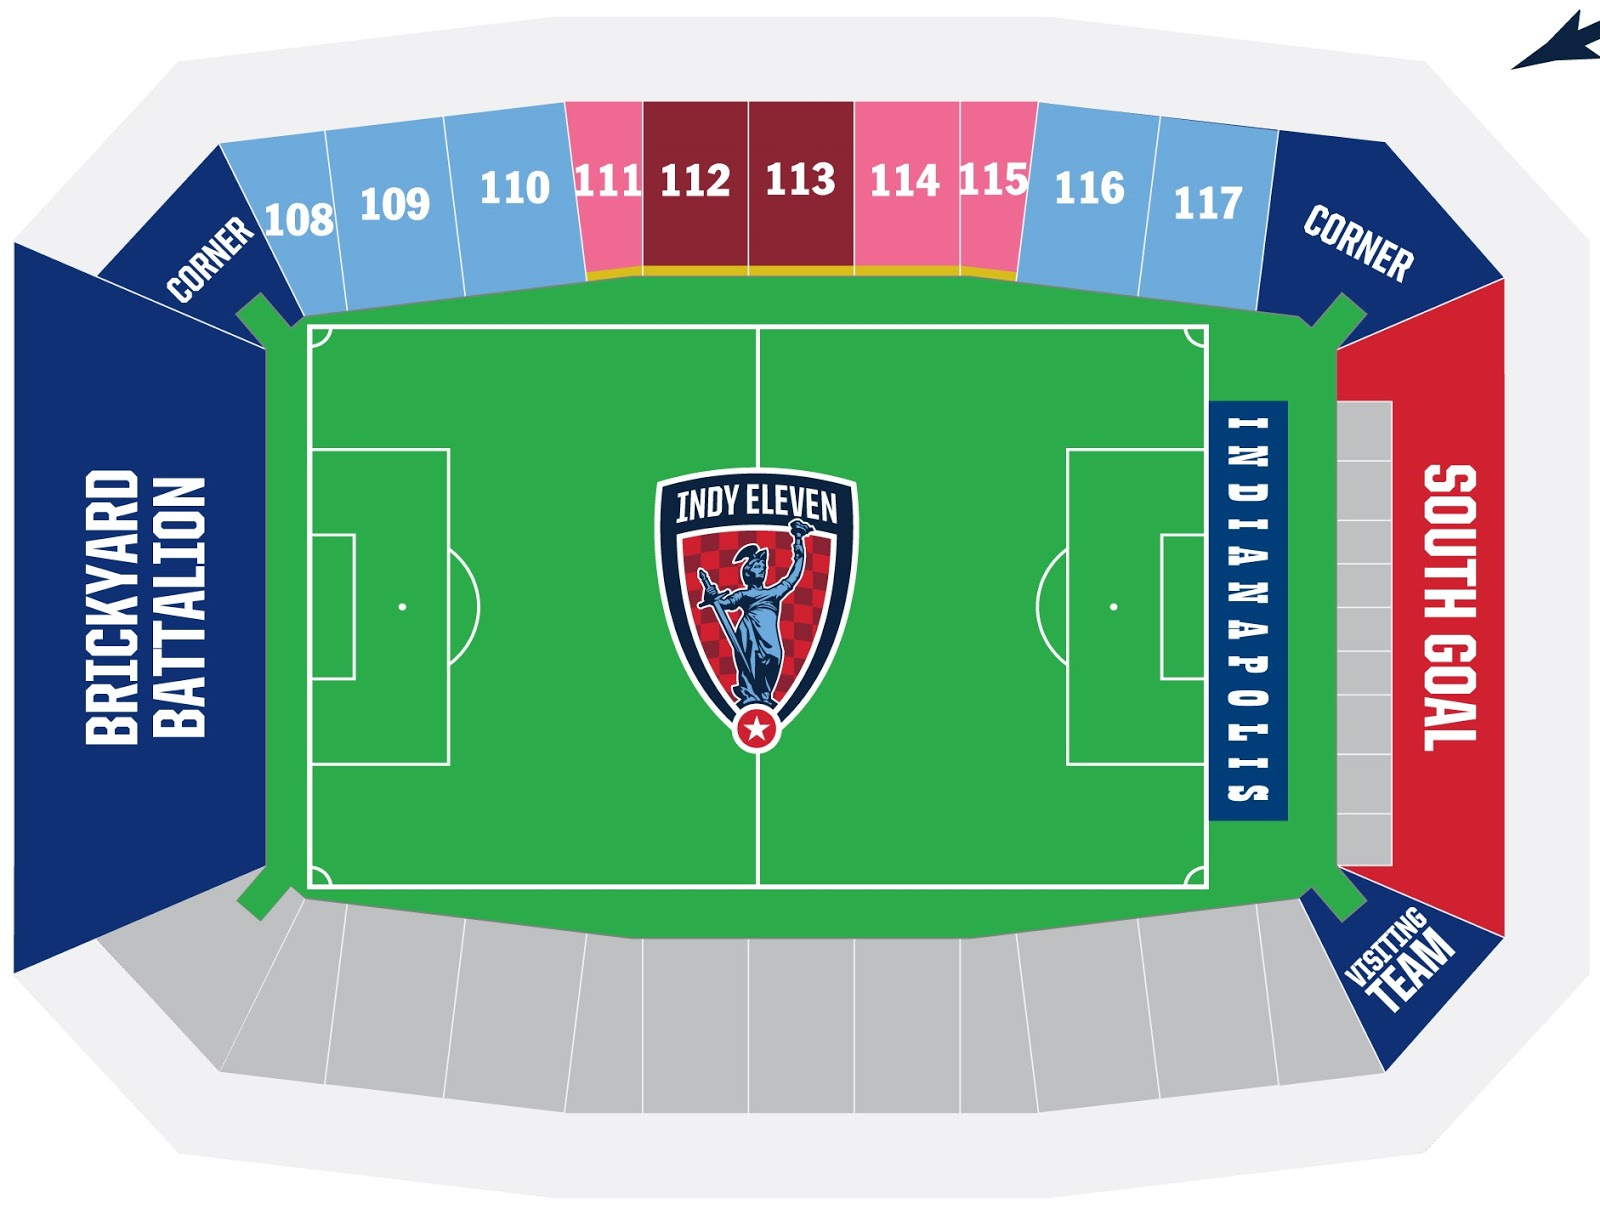 So it looks like the team intends to still use just predominantly one side of field for spectators edit season ticket holders also game beckons indy eleven prices rh beckonsspot